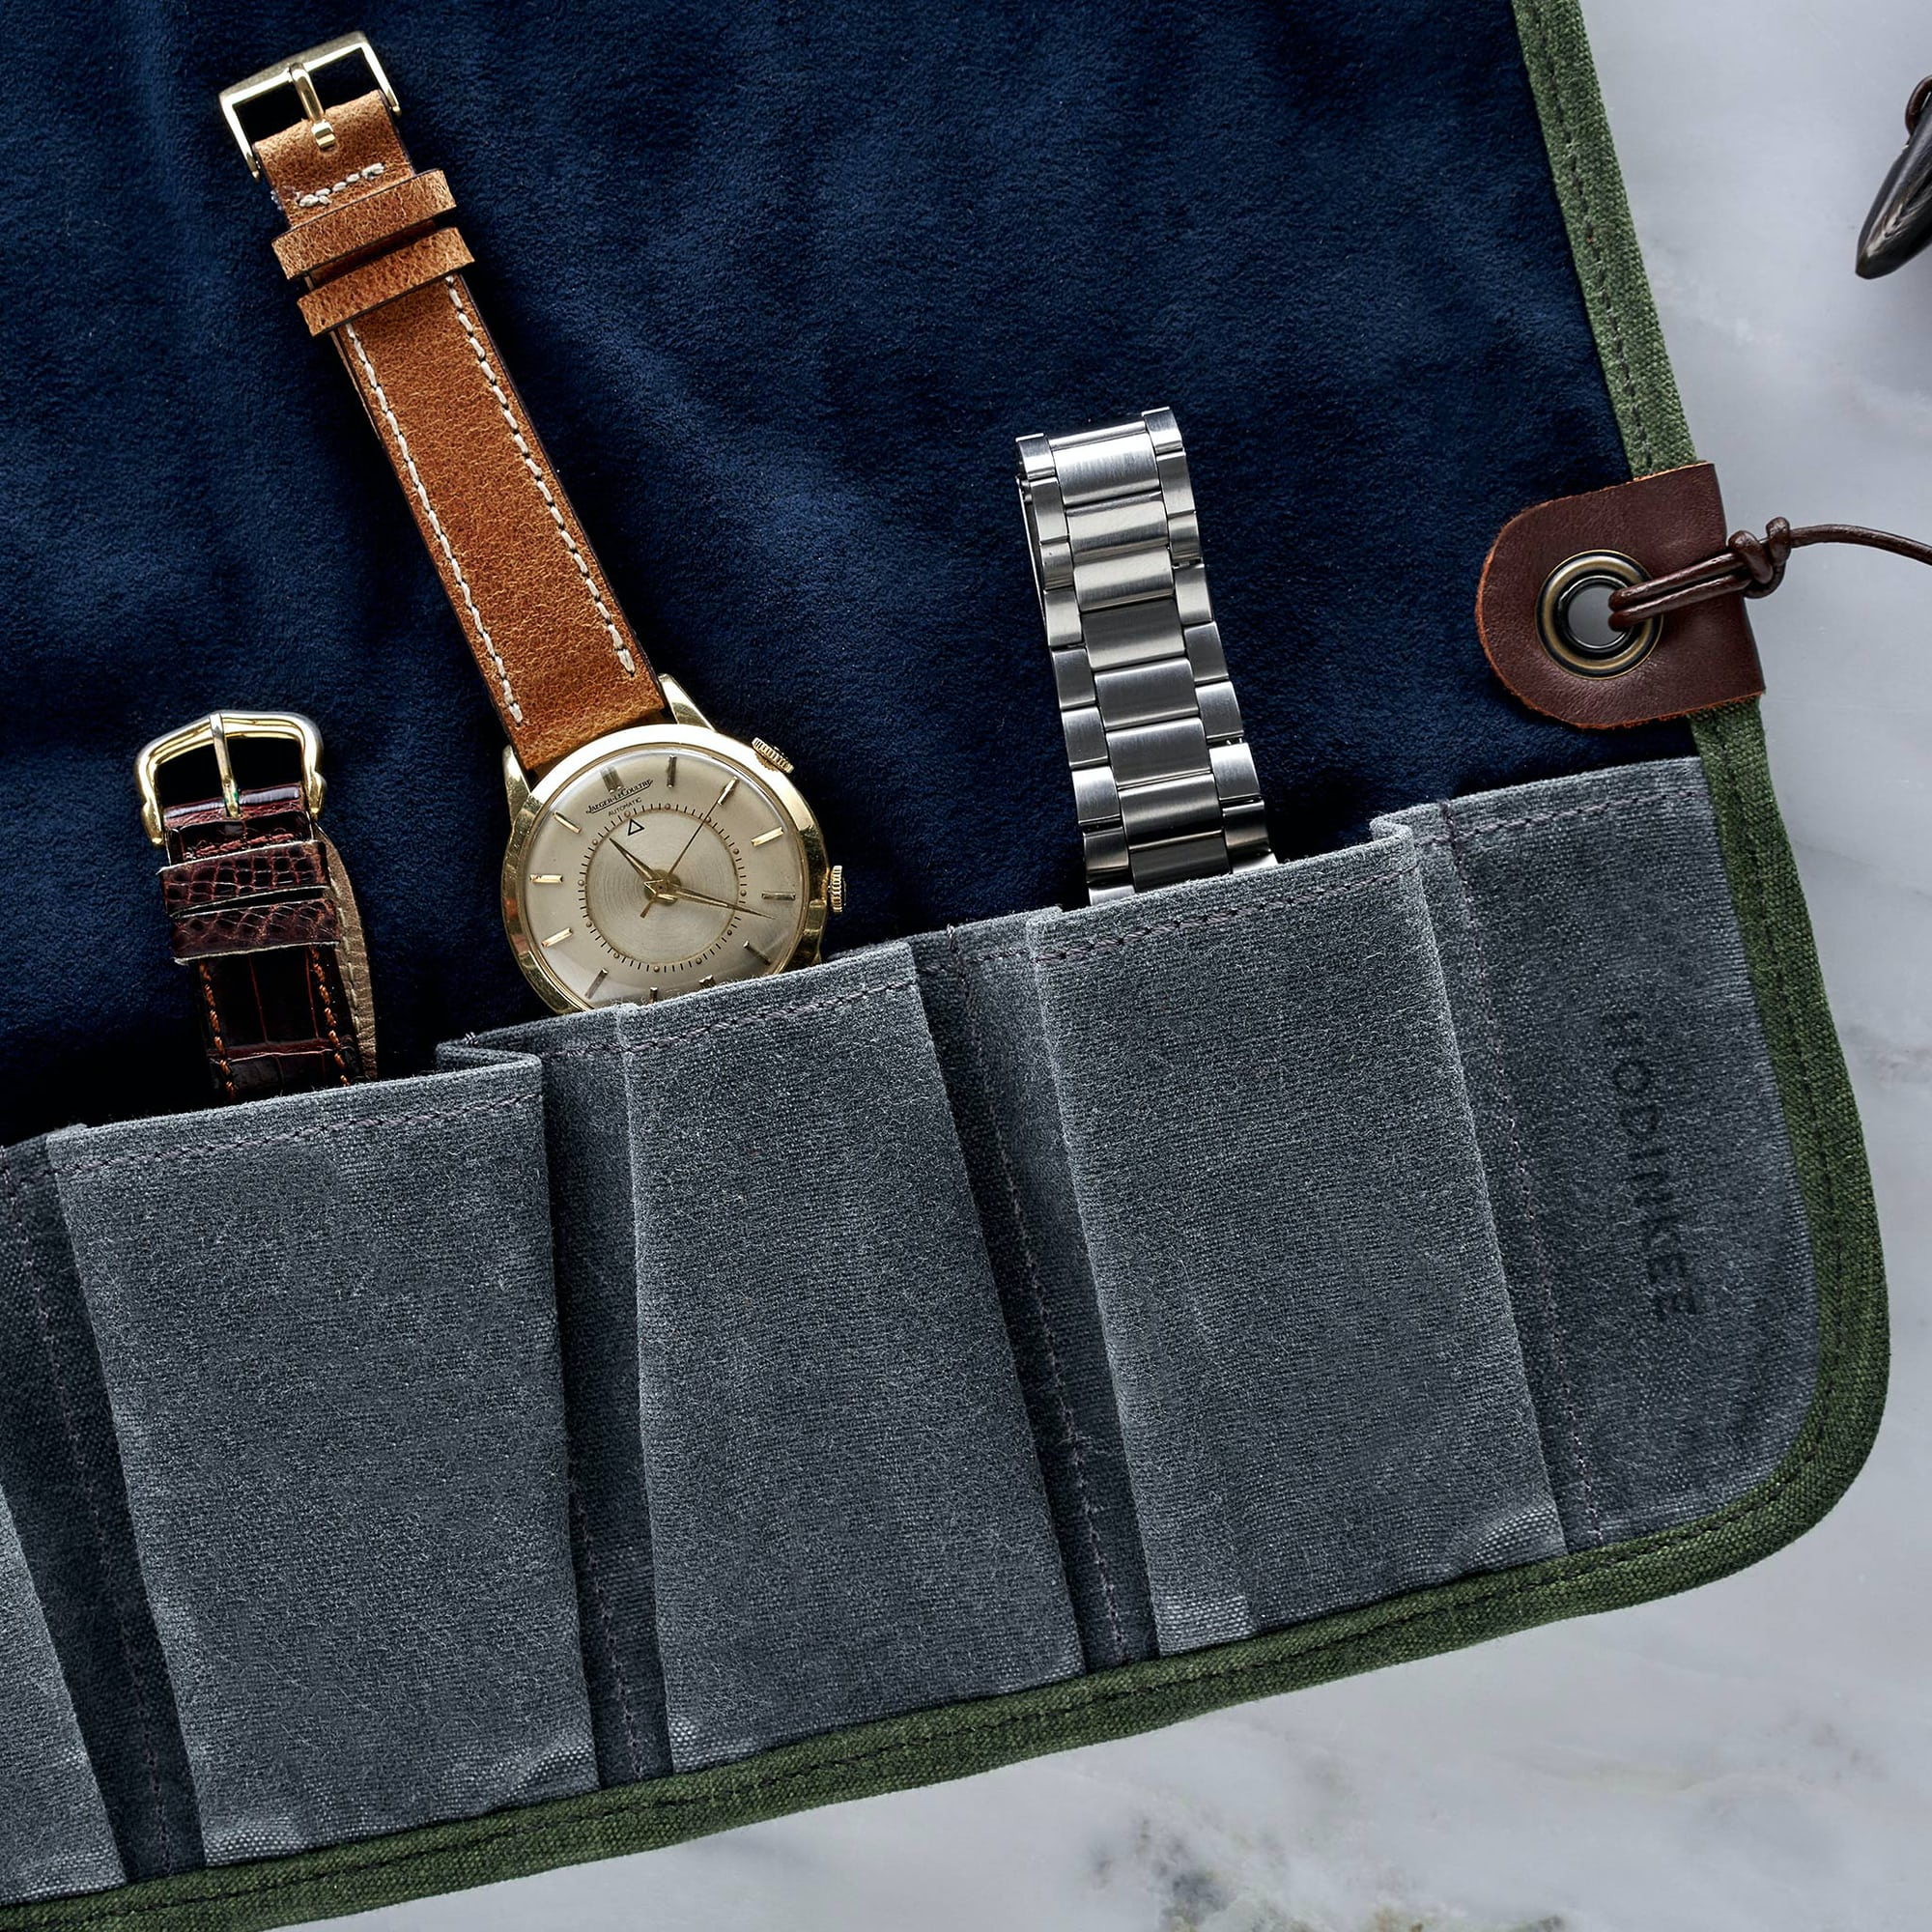 In The Shop – Our Favorite Watches And Accessories For The Fourth Of July ROLL C S BL 4